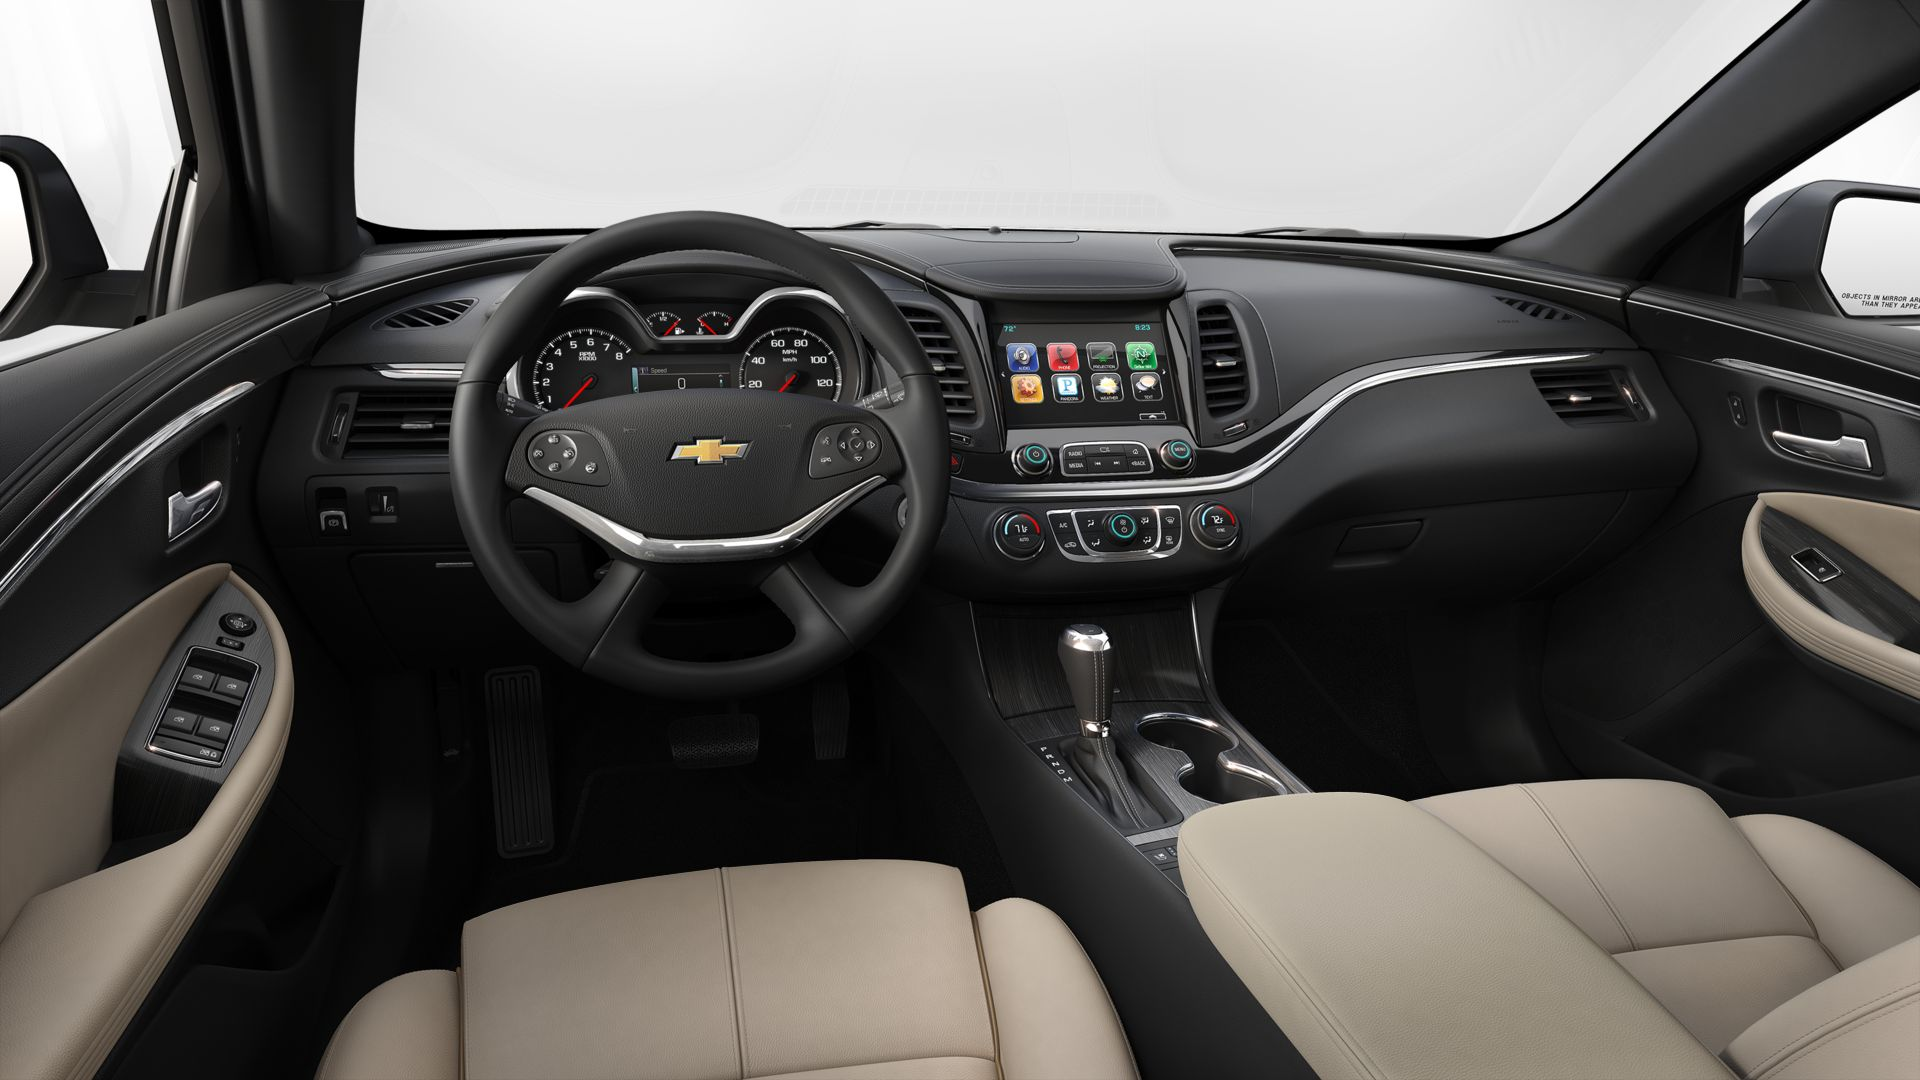 hight resolution of 2019 chevrolet impala jet black with light wheat leather interior hv9